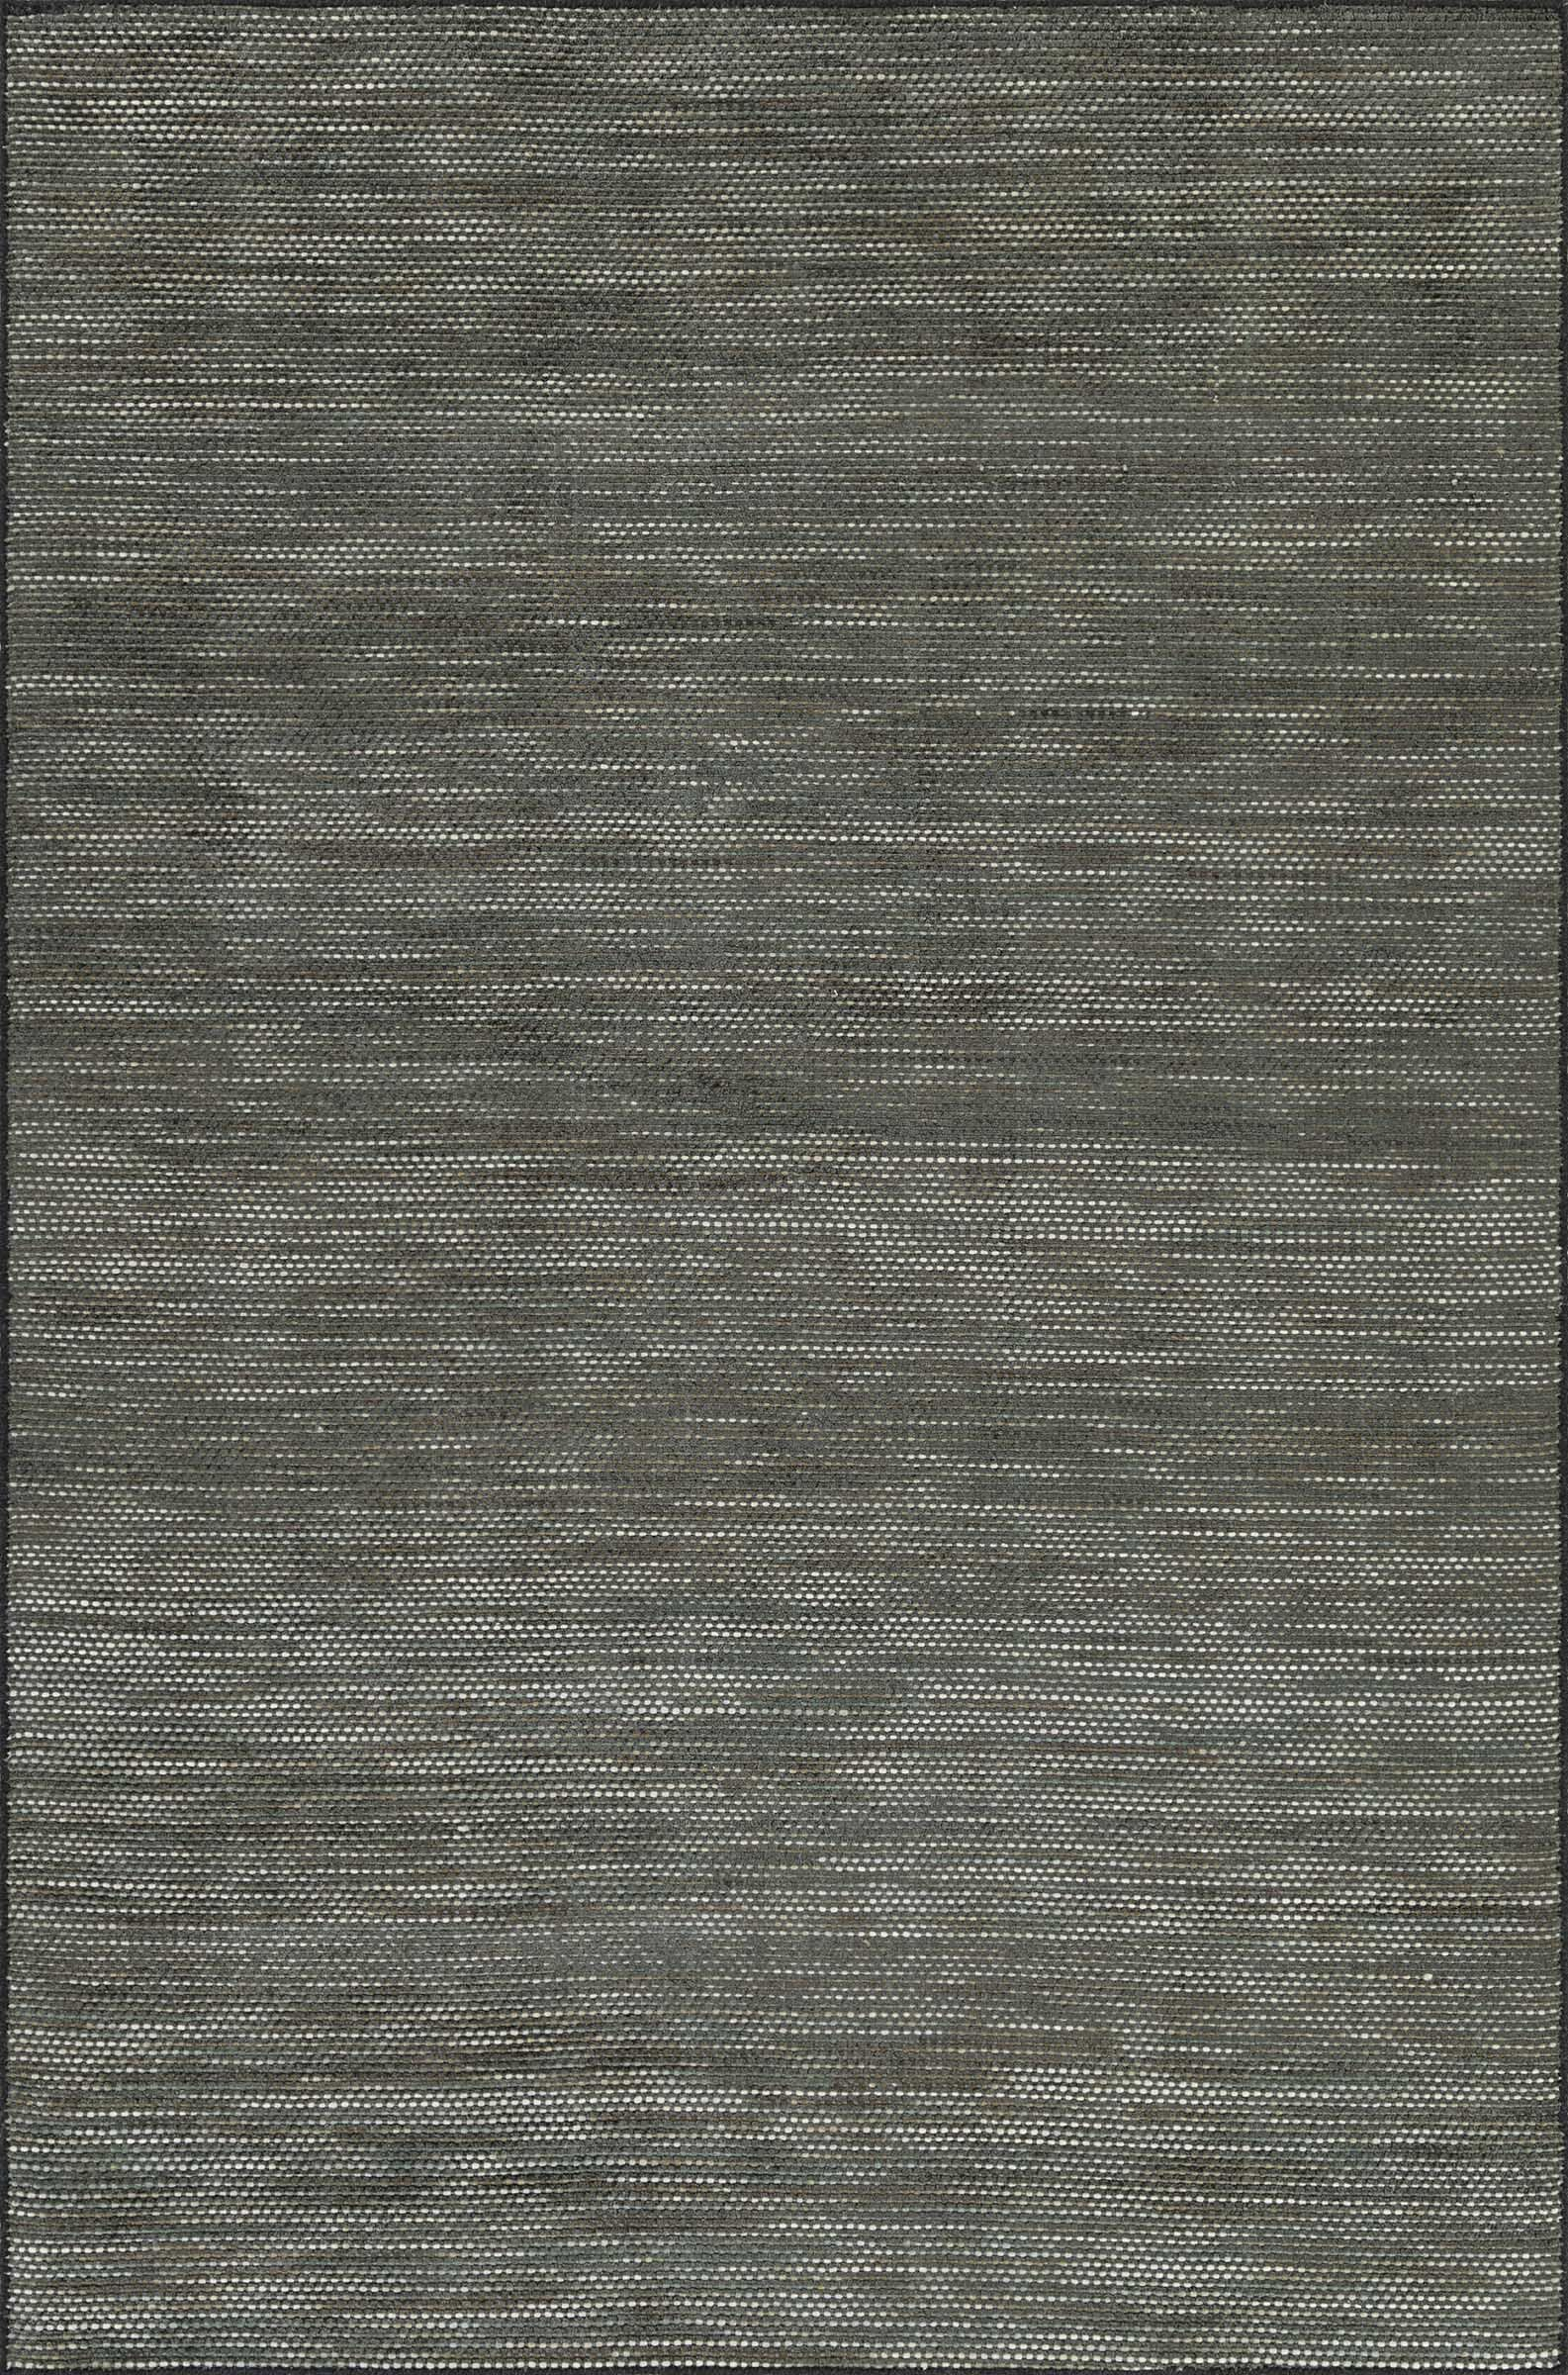 Minh Hand-Woven Midnight Area Rug Rug Size: Rectangle 5' x 7'6